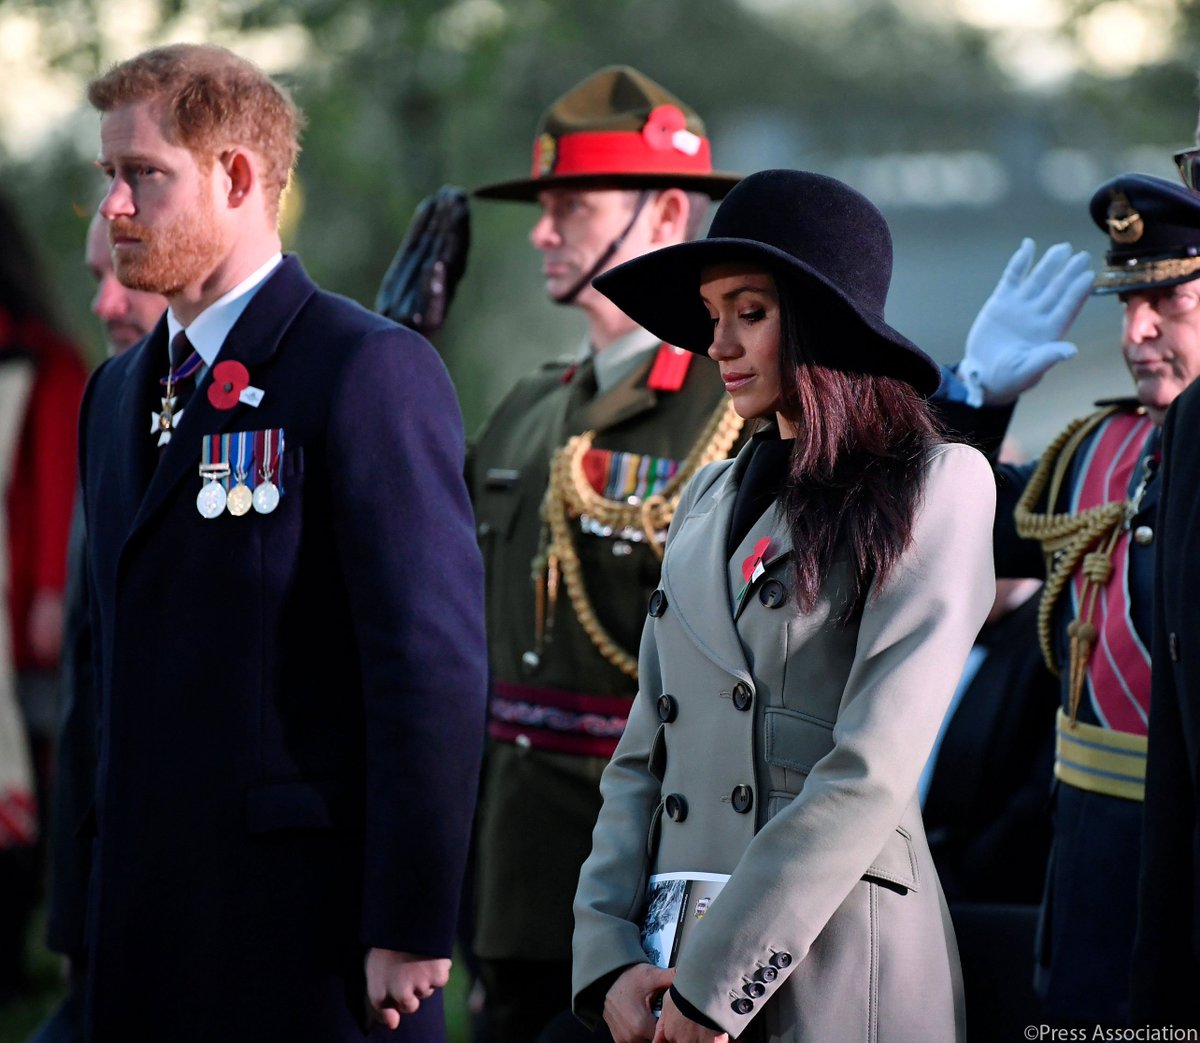 In London this morning, Prince Harry and Ms. Meghan Markle attended The Dawn Service at Wellington Arch. #ANZACDay